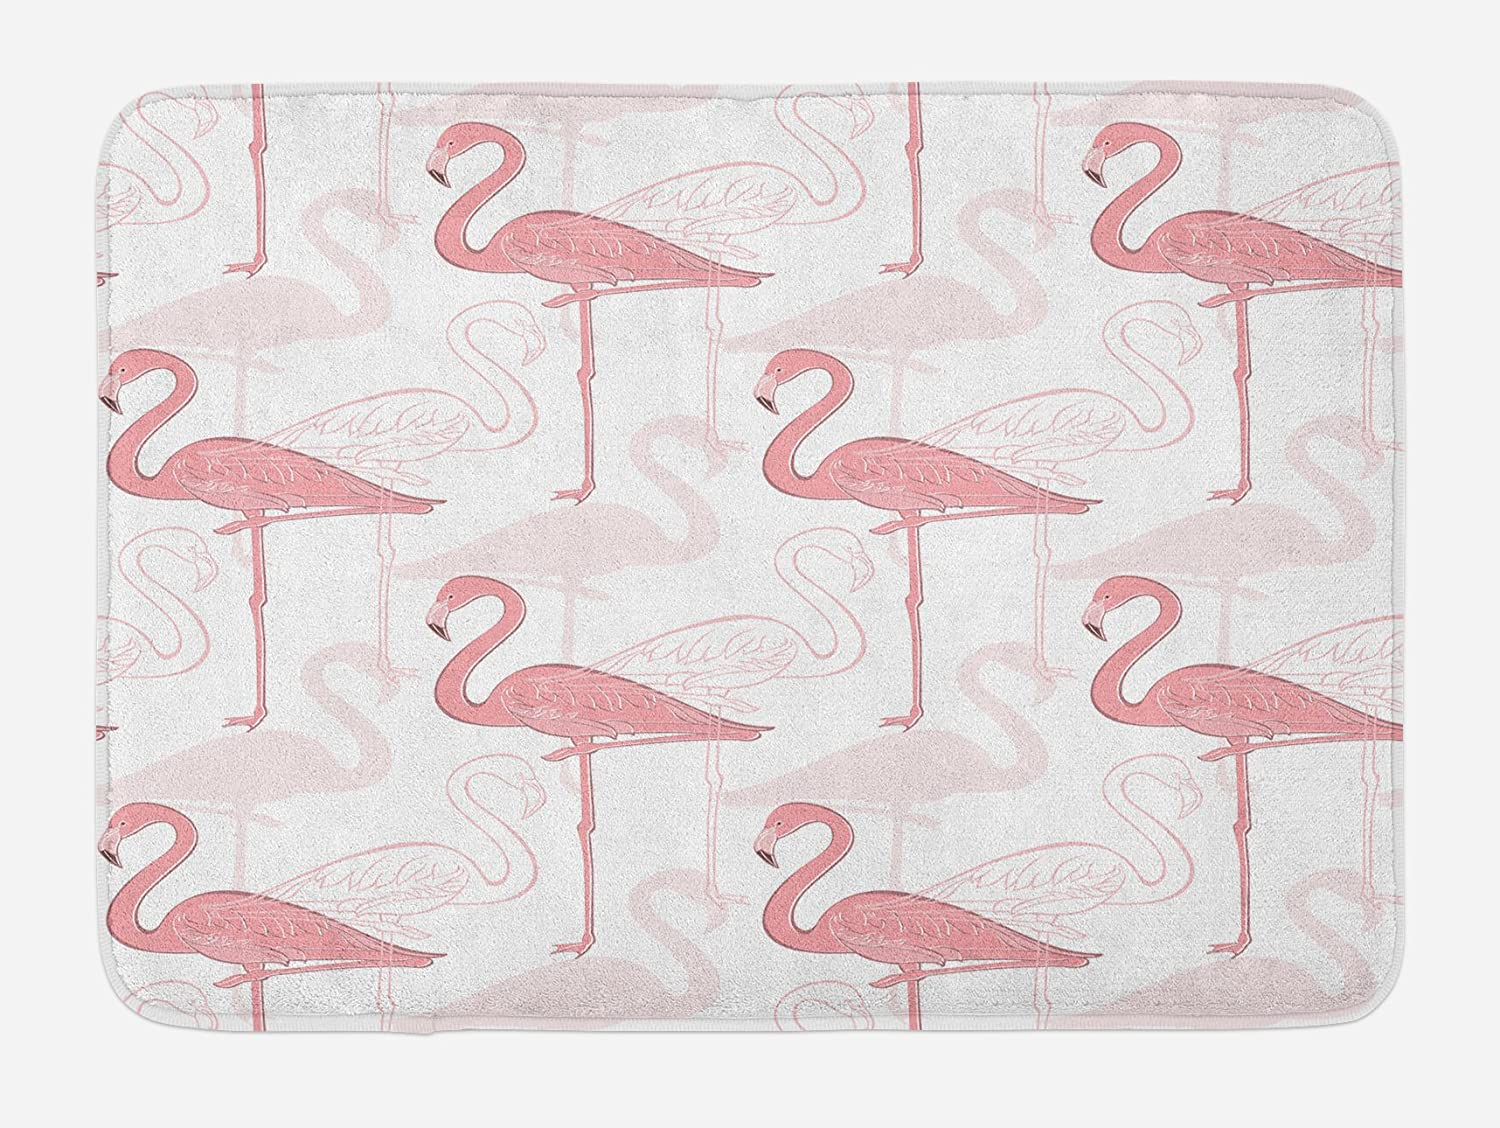 Lunarable Flamingo Bath Mat, Standing Flamingos Pattern Holiday Jungle Hawaii Wildlife Illustration, Plush Bathroom Decor Mat with Non Slip Backing, 29.5 X 17.5, Pale Pink and White